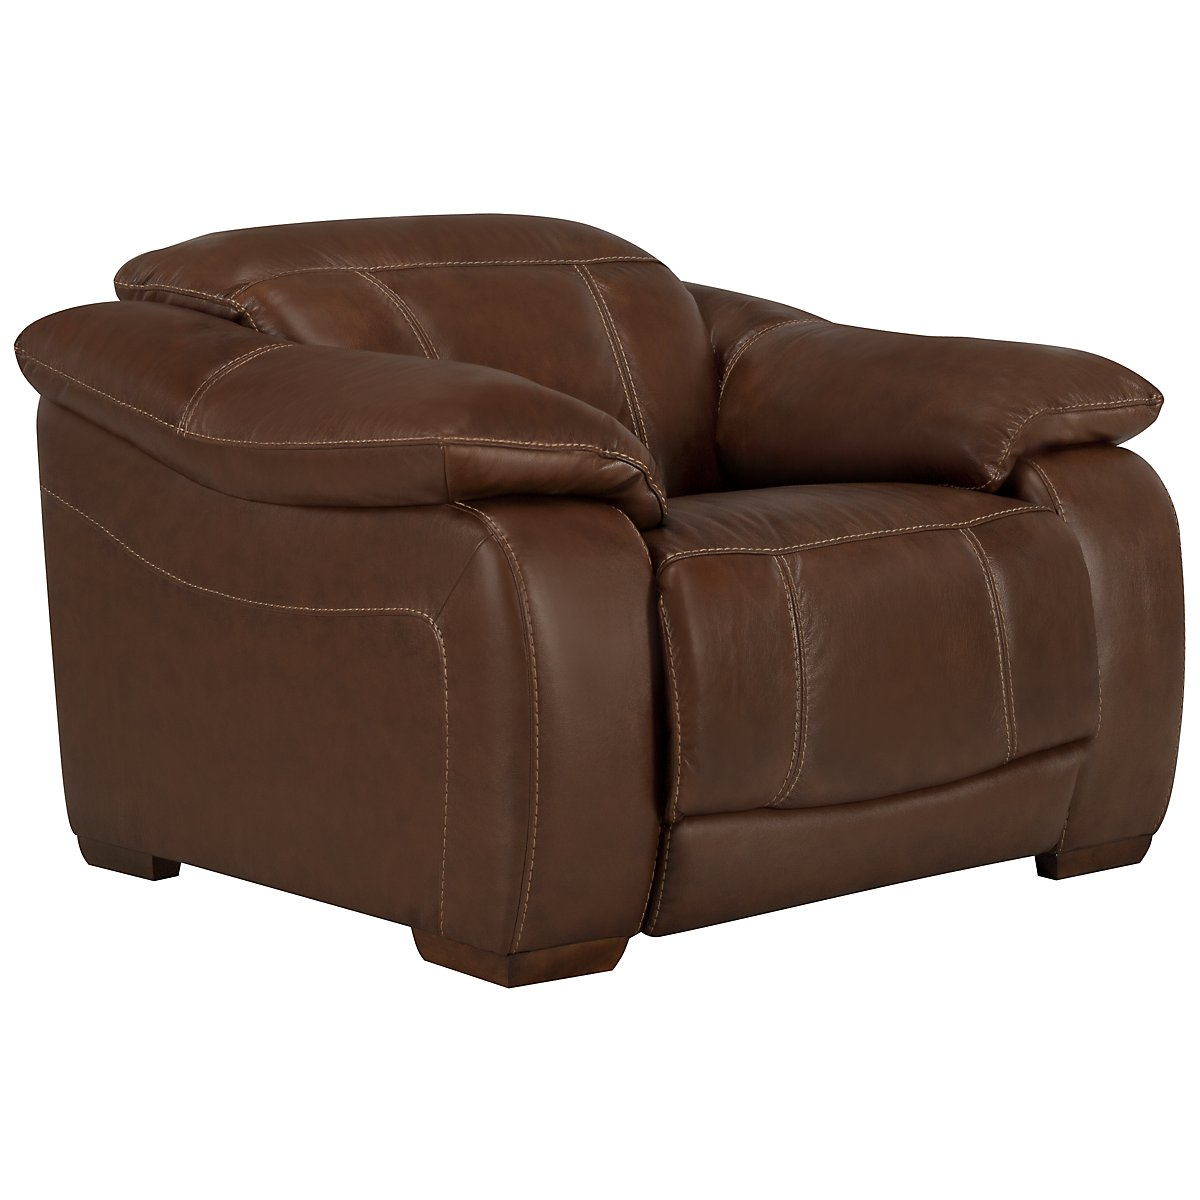 Orion Medium Brown Leather & Bonded Leather Recliner